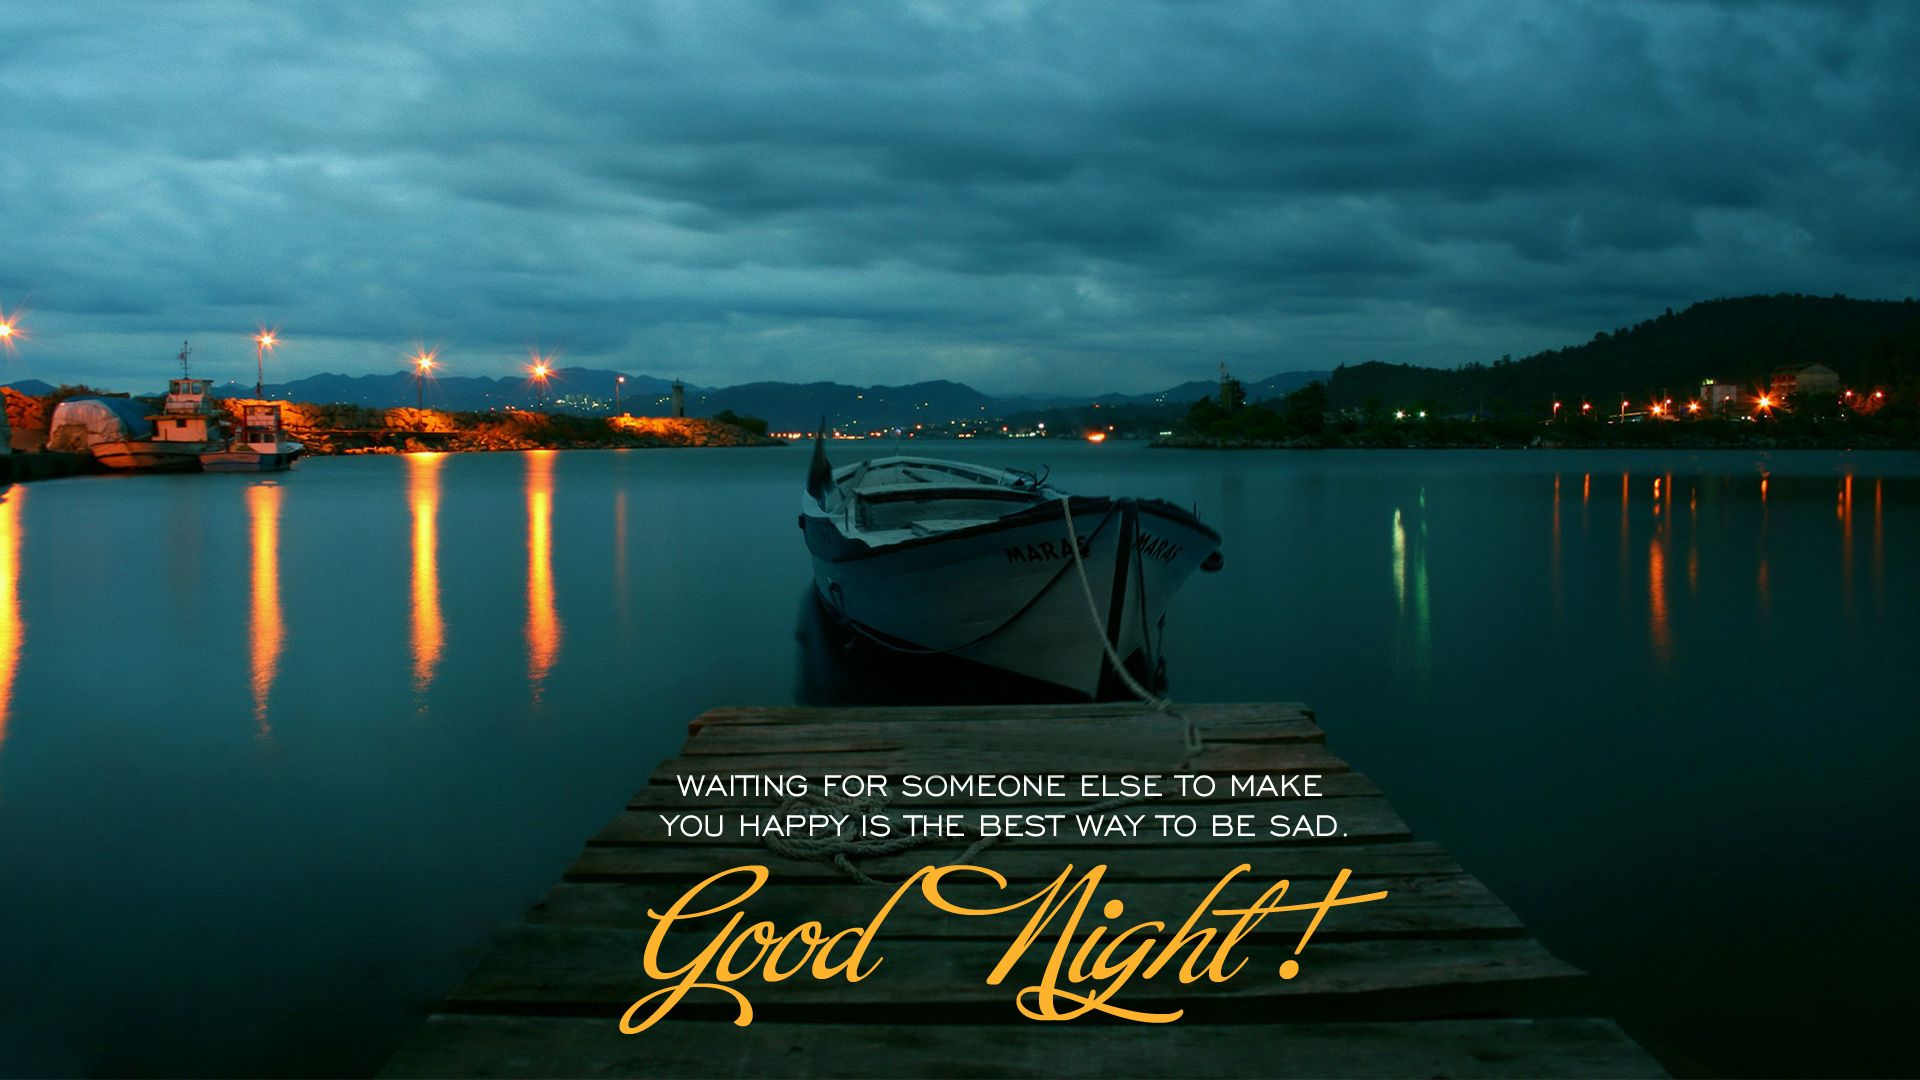 Good night hd wallpaper for pc